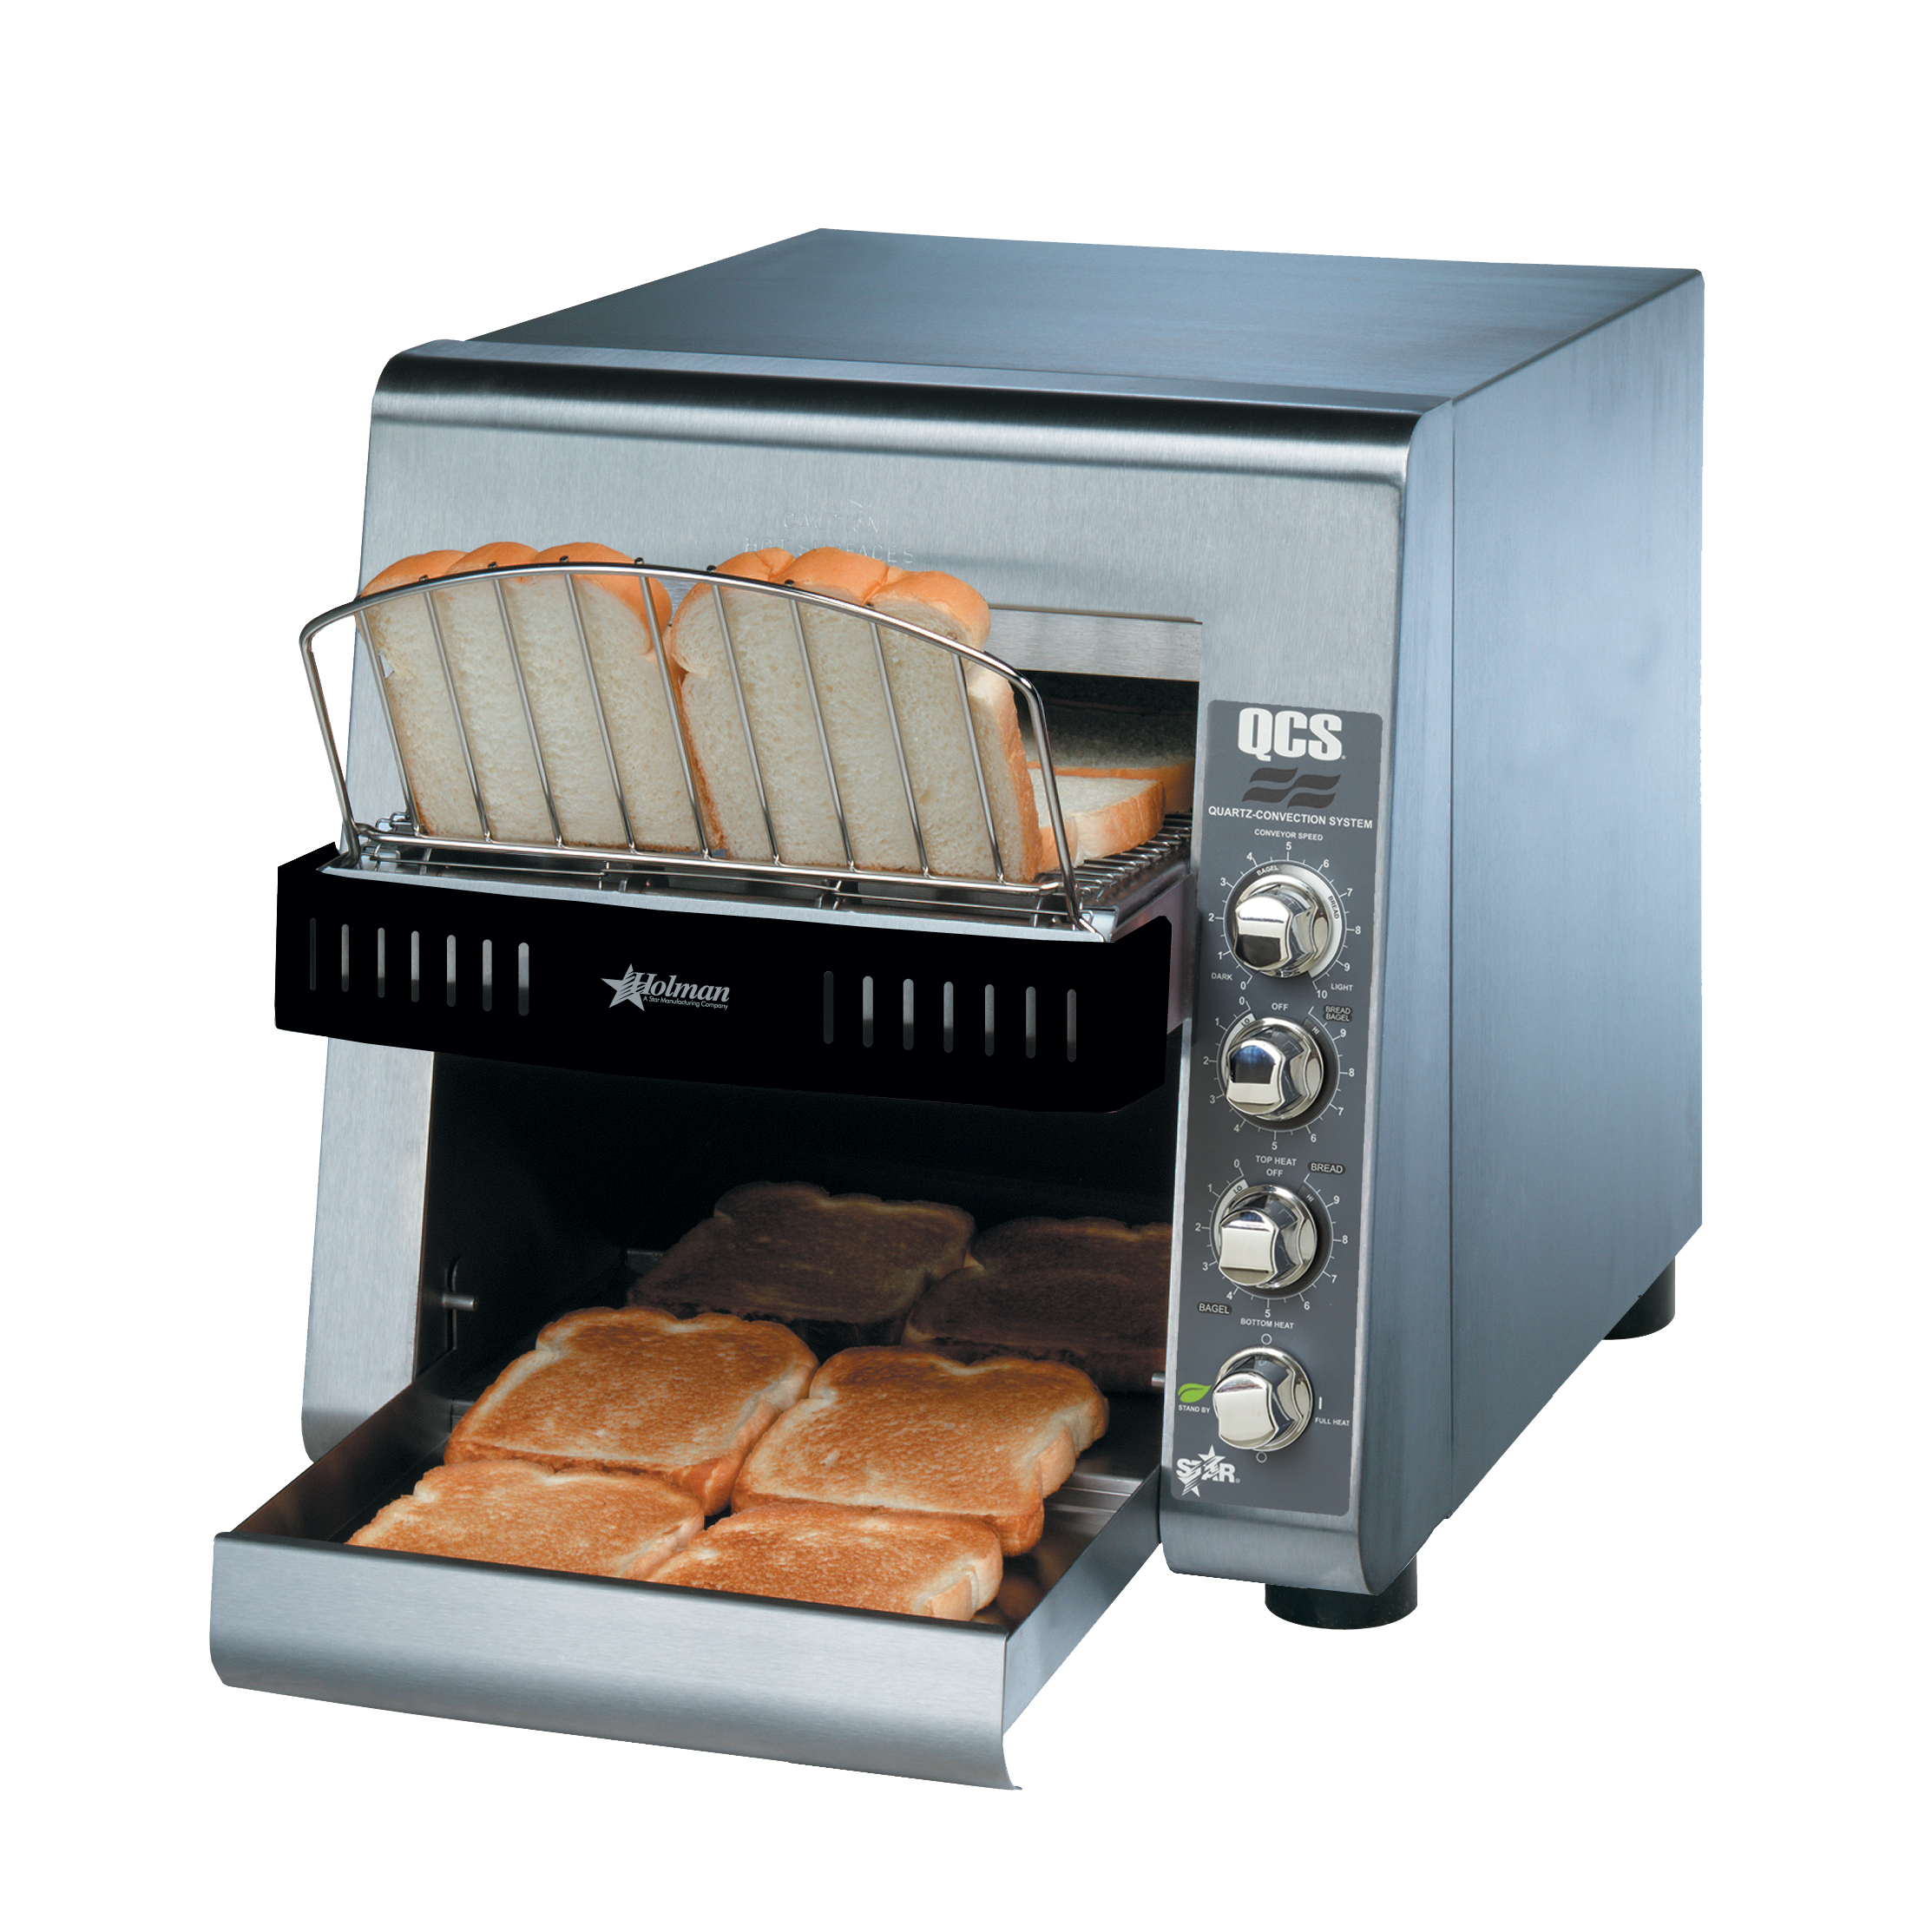 Star QCS2-500 toaster, conveyor type